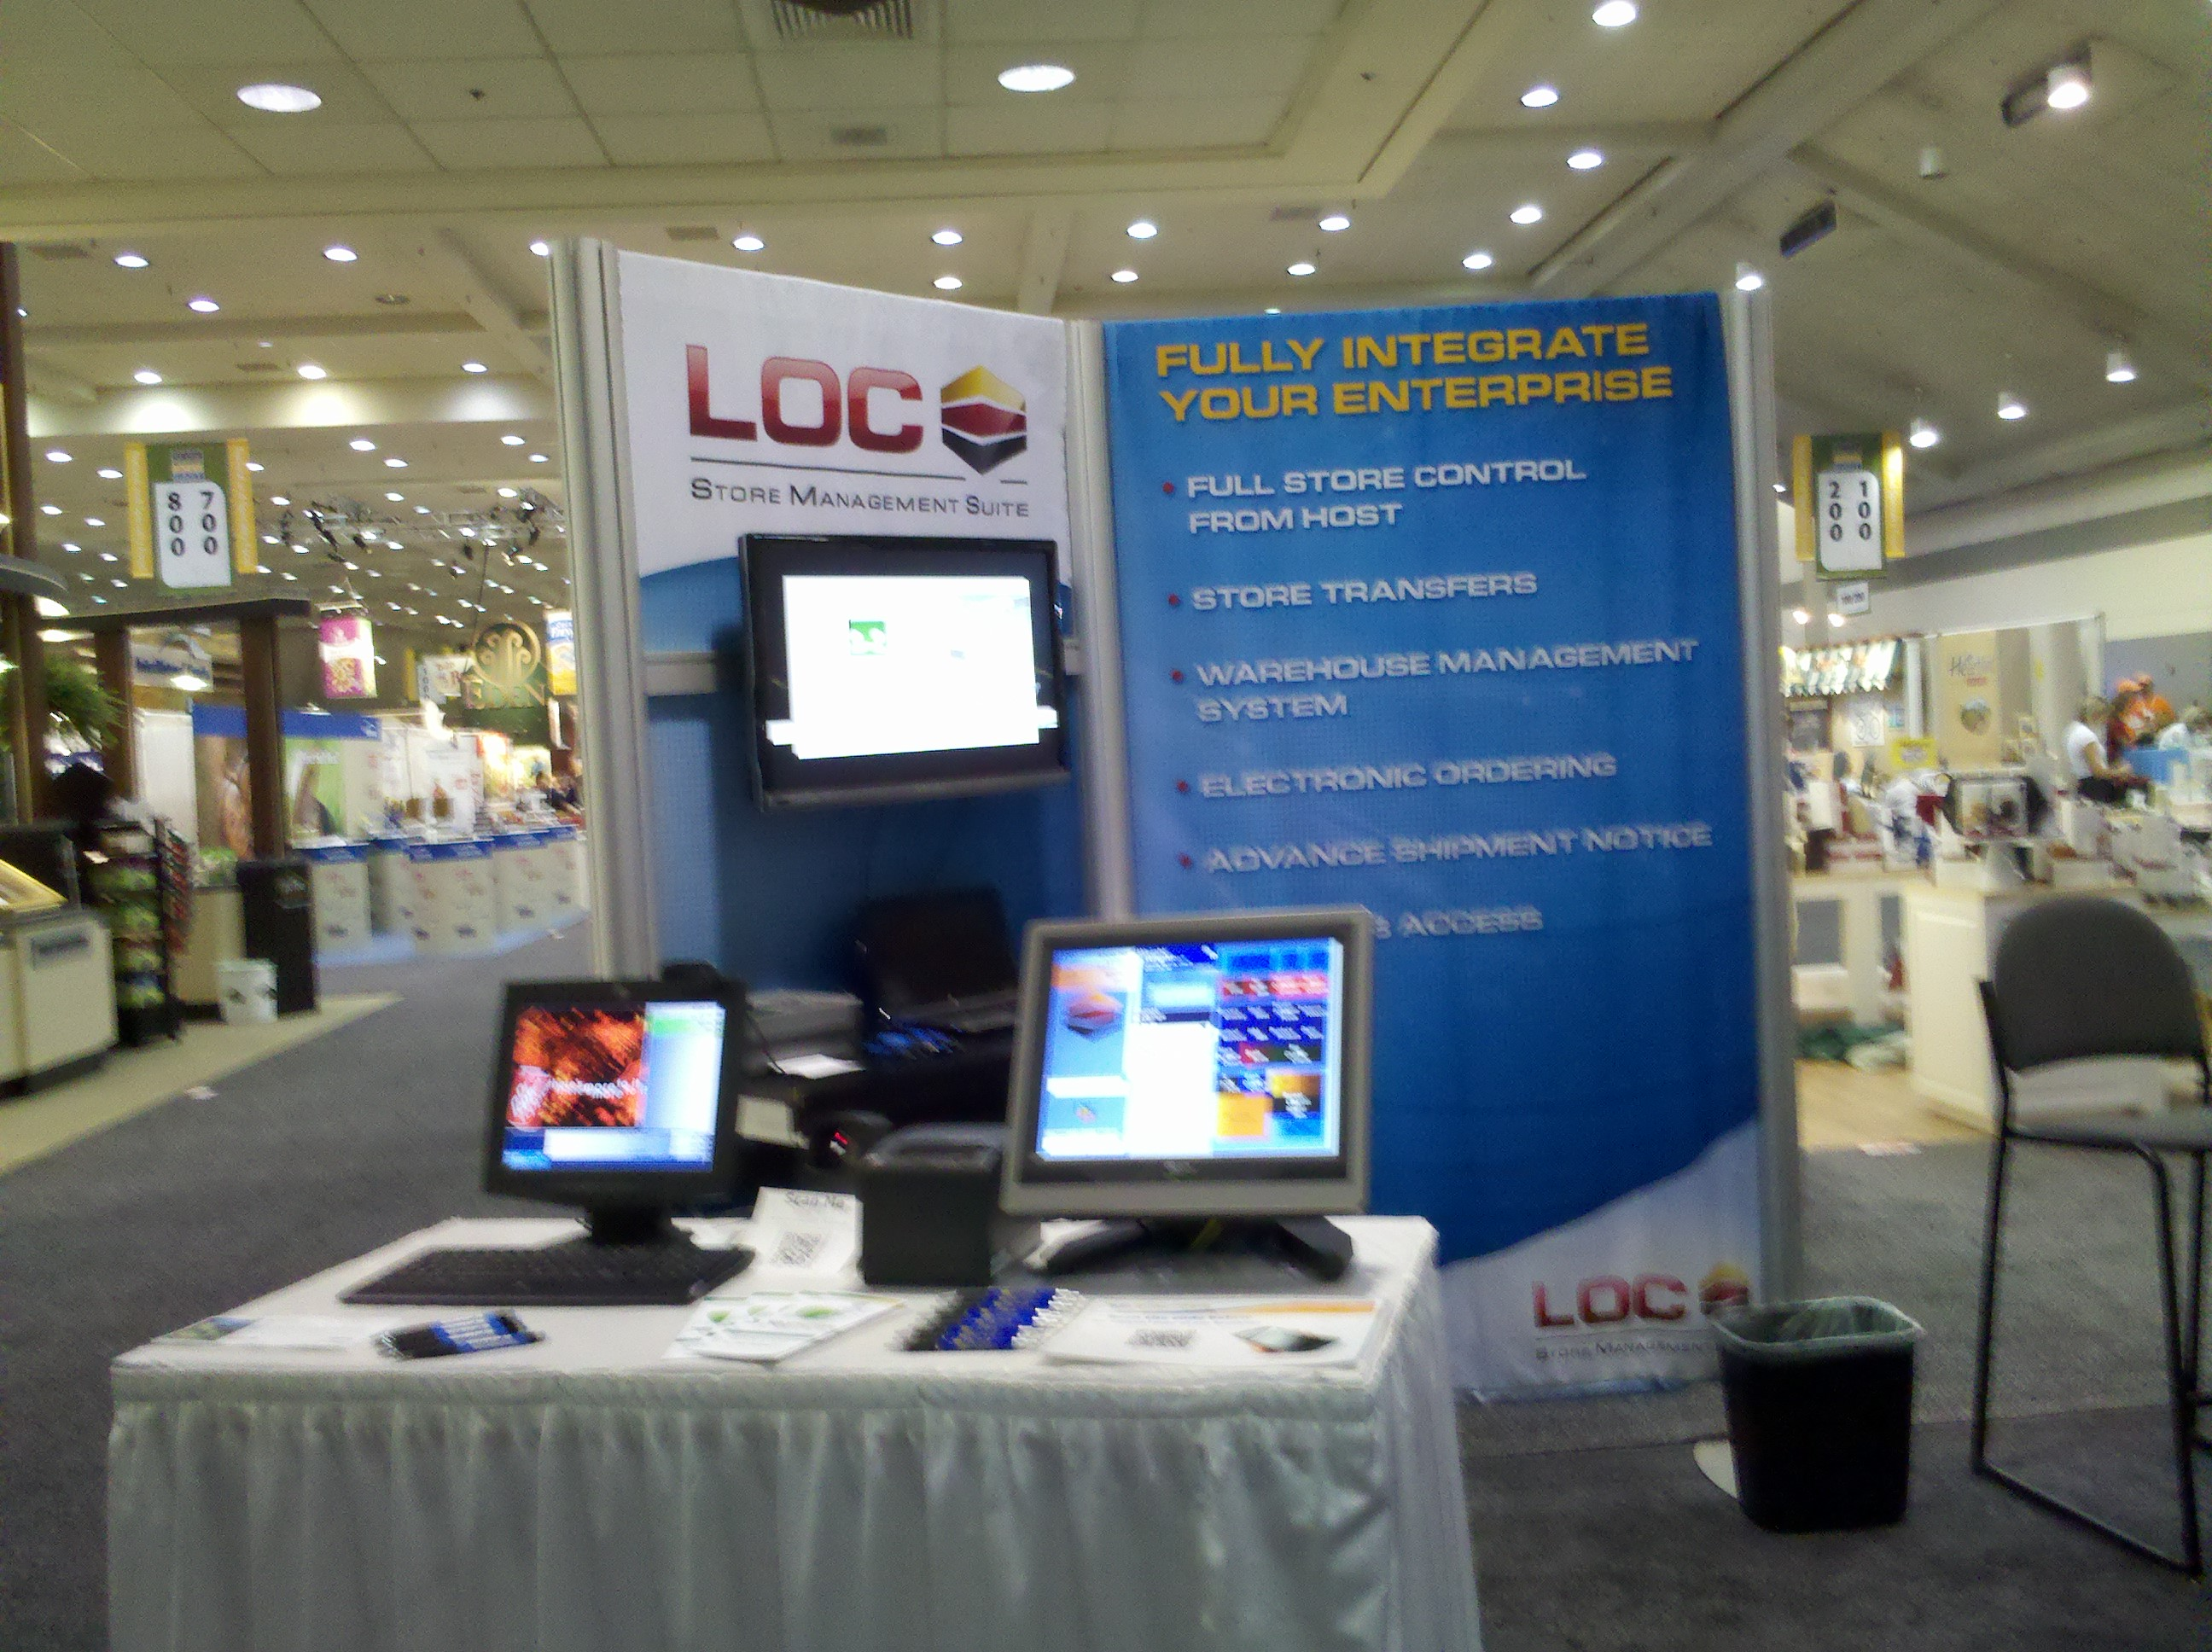 DCR and Loc software would like to thank you for visiting us at Expo East 2011 in Baltimore, MD